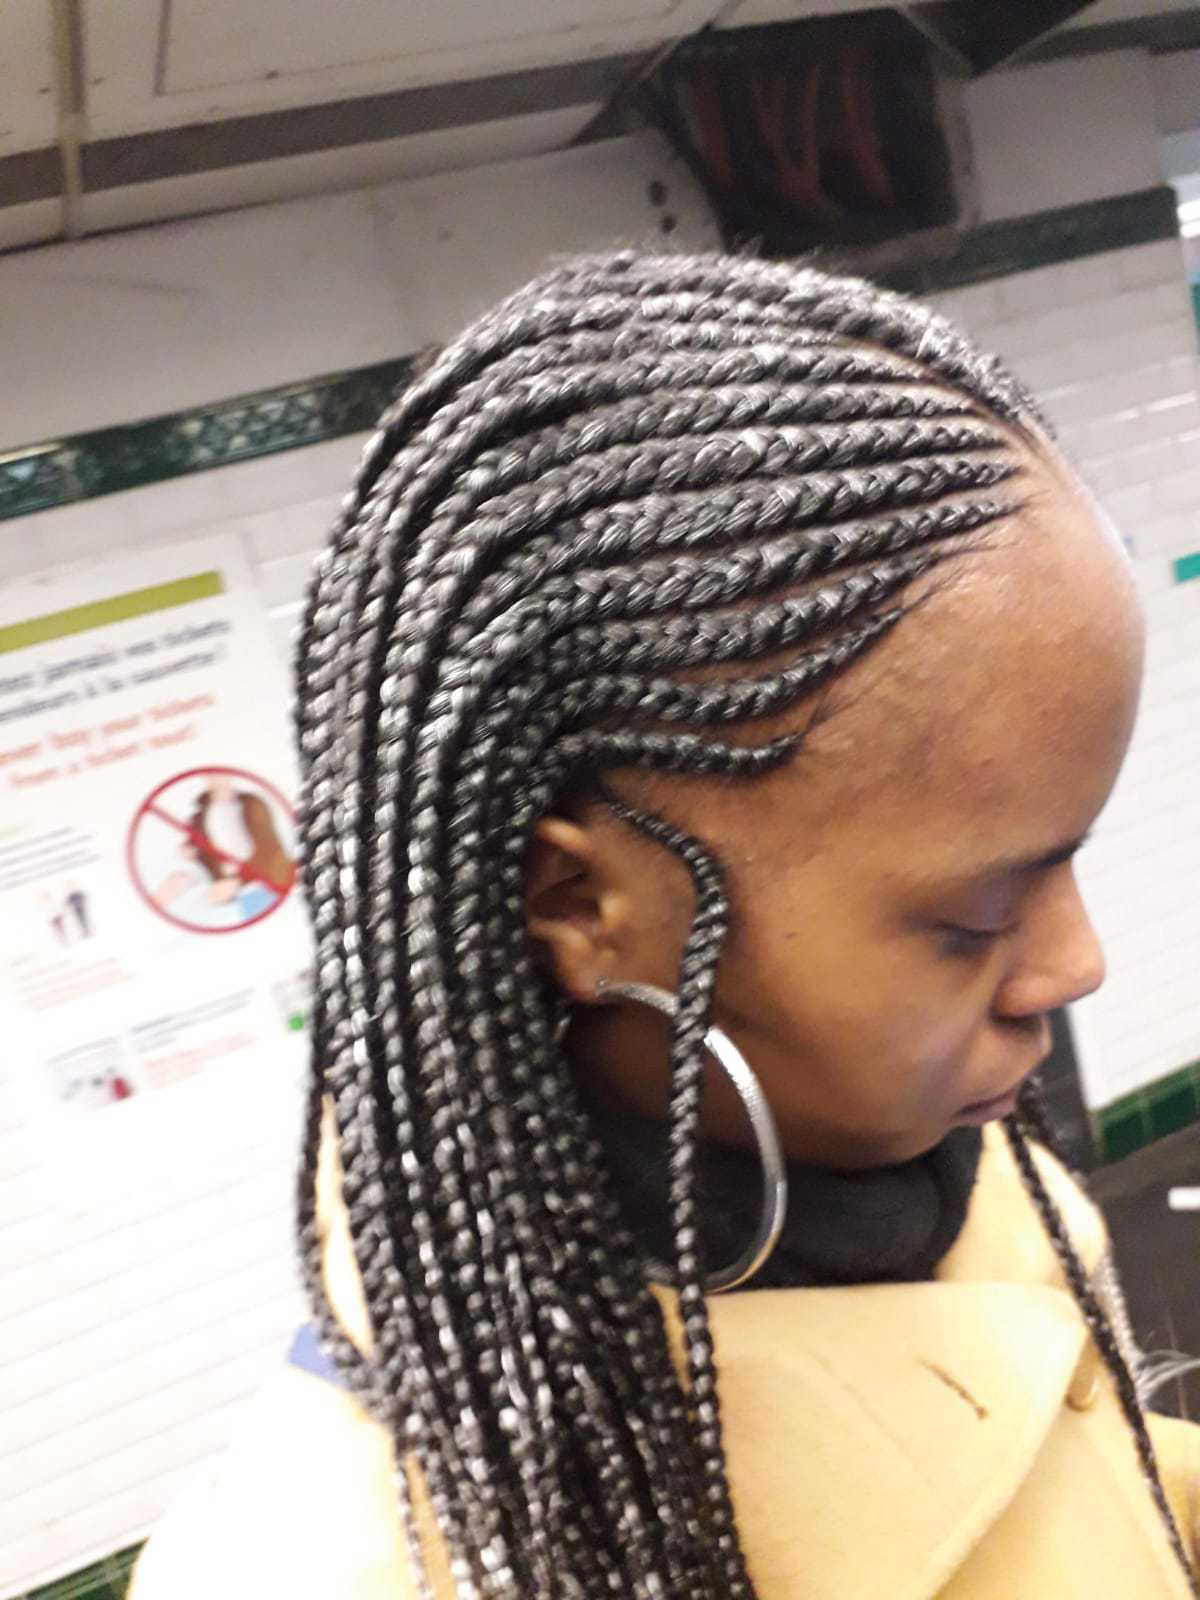 salon de coiffure afro tresse tresses box braids crochet braids vanilles tissages paris 75 77 78 91 92 93 94 95 SLEHQNPK